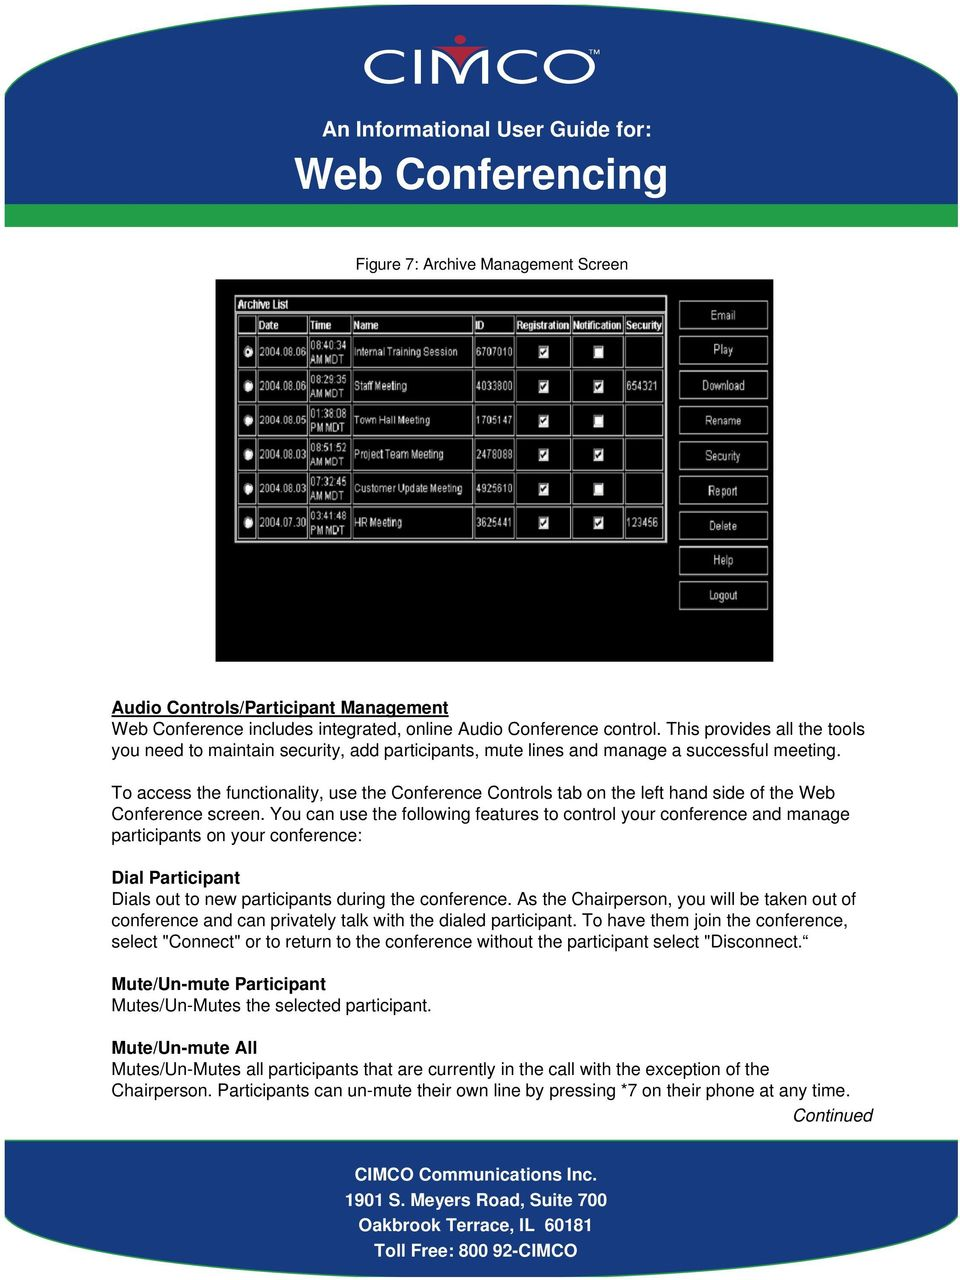 To access the functionality, use the Conference Controls tab on the left hand side of the Web Conference screen.